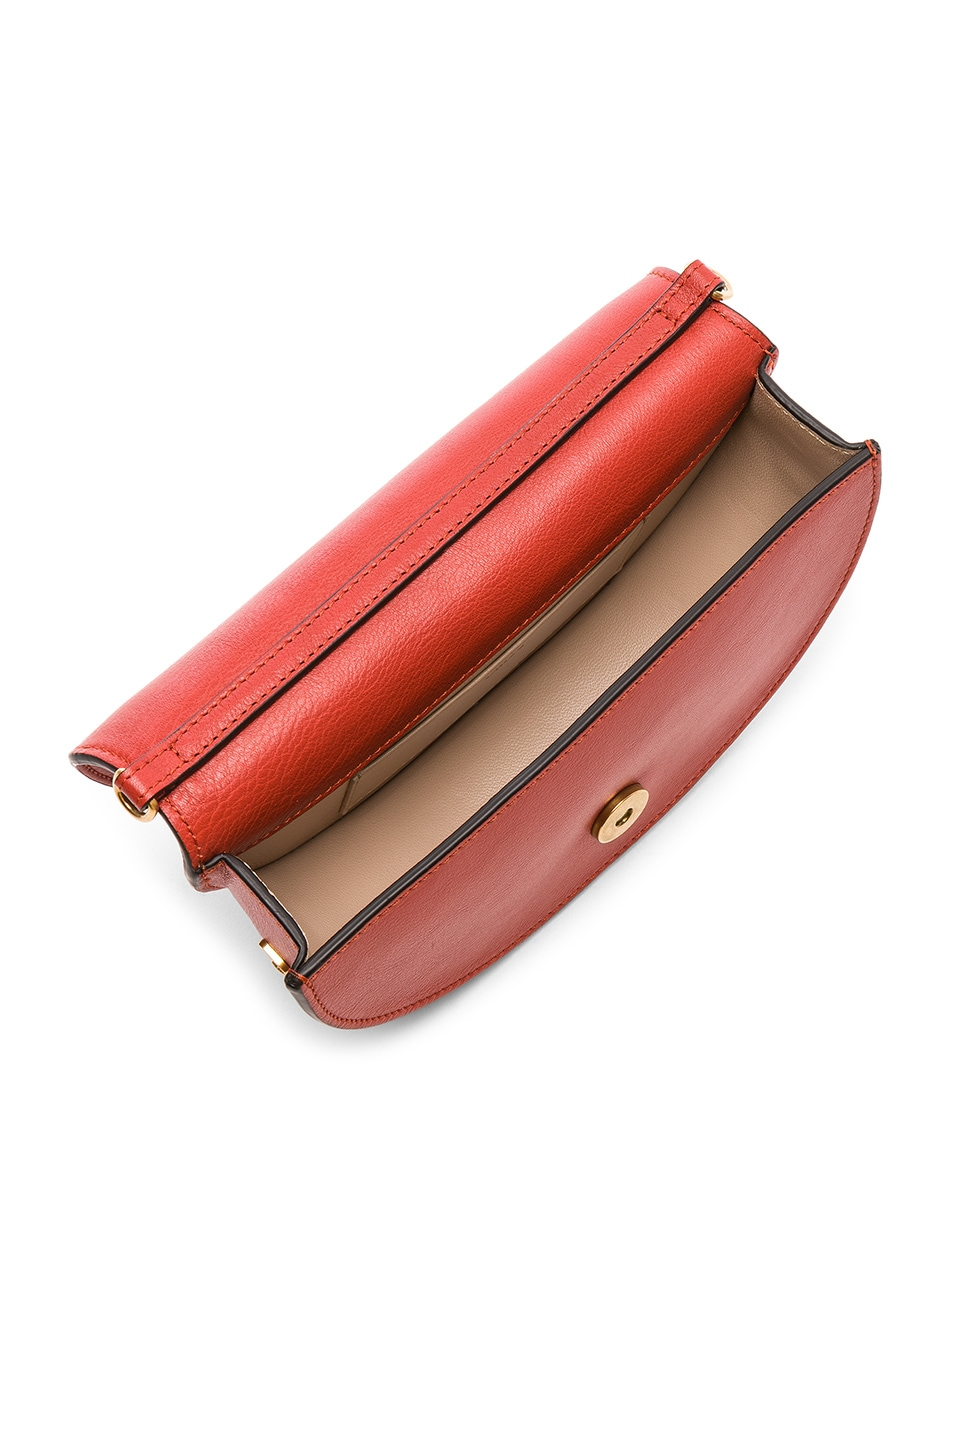 Image 5 of Chloe Small Nile Leather Minaudiere in Earthy Red